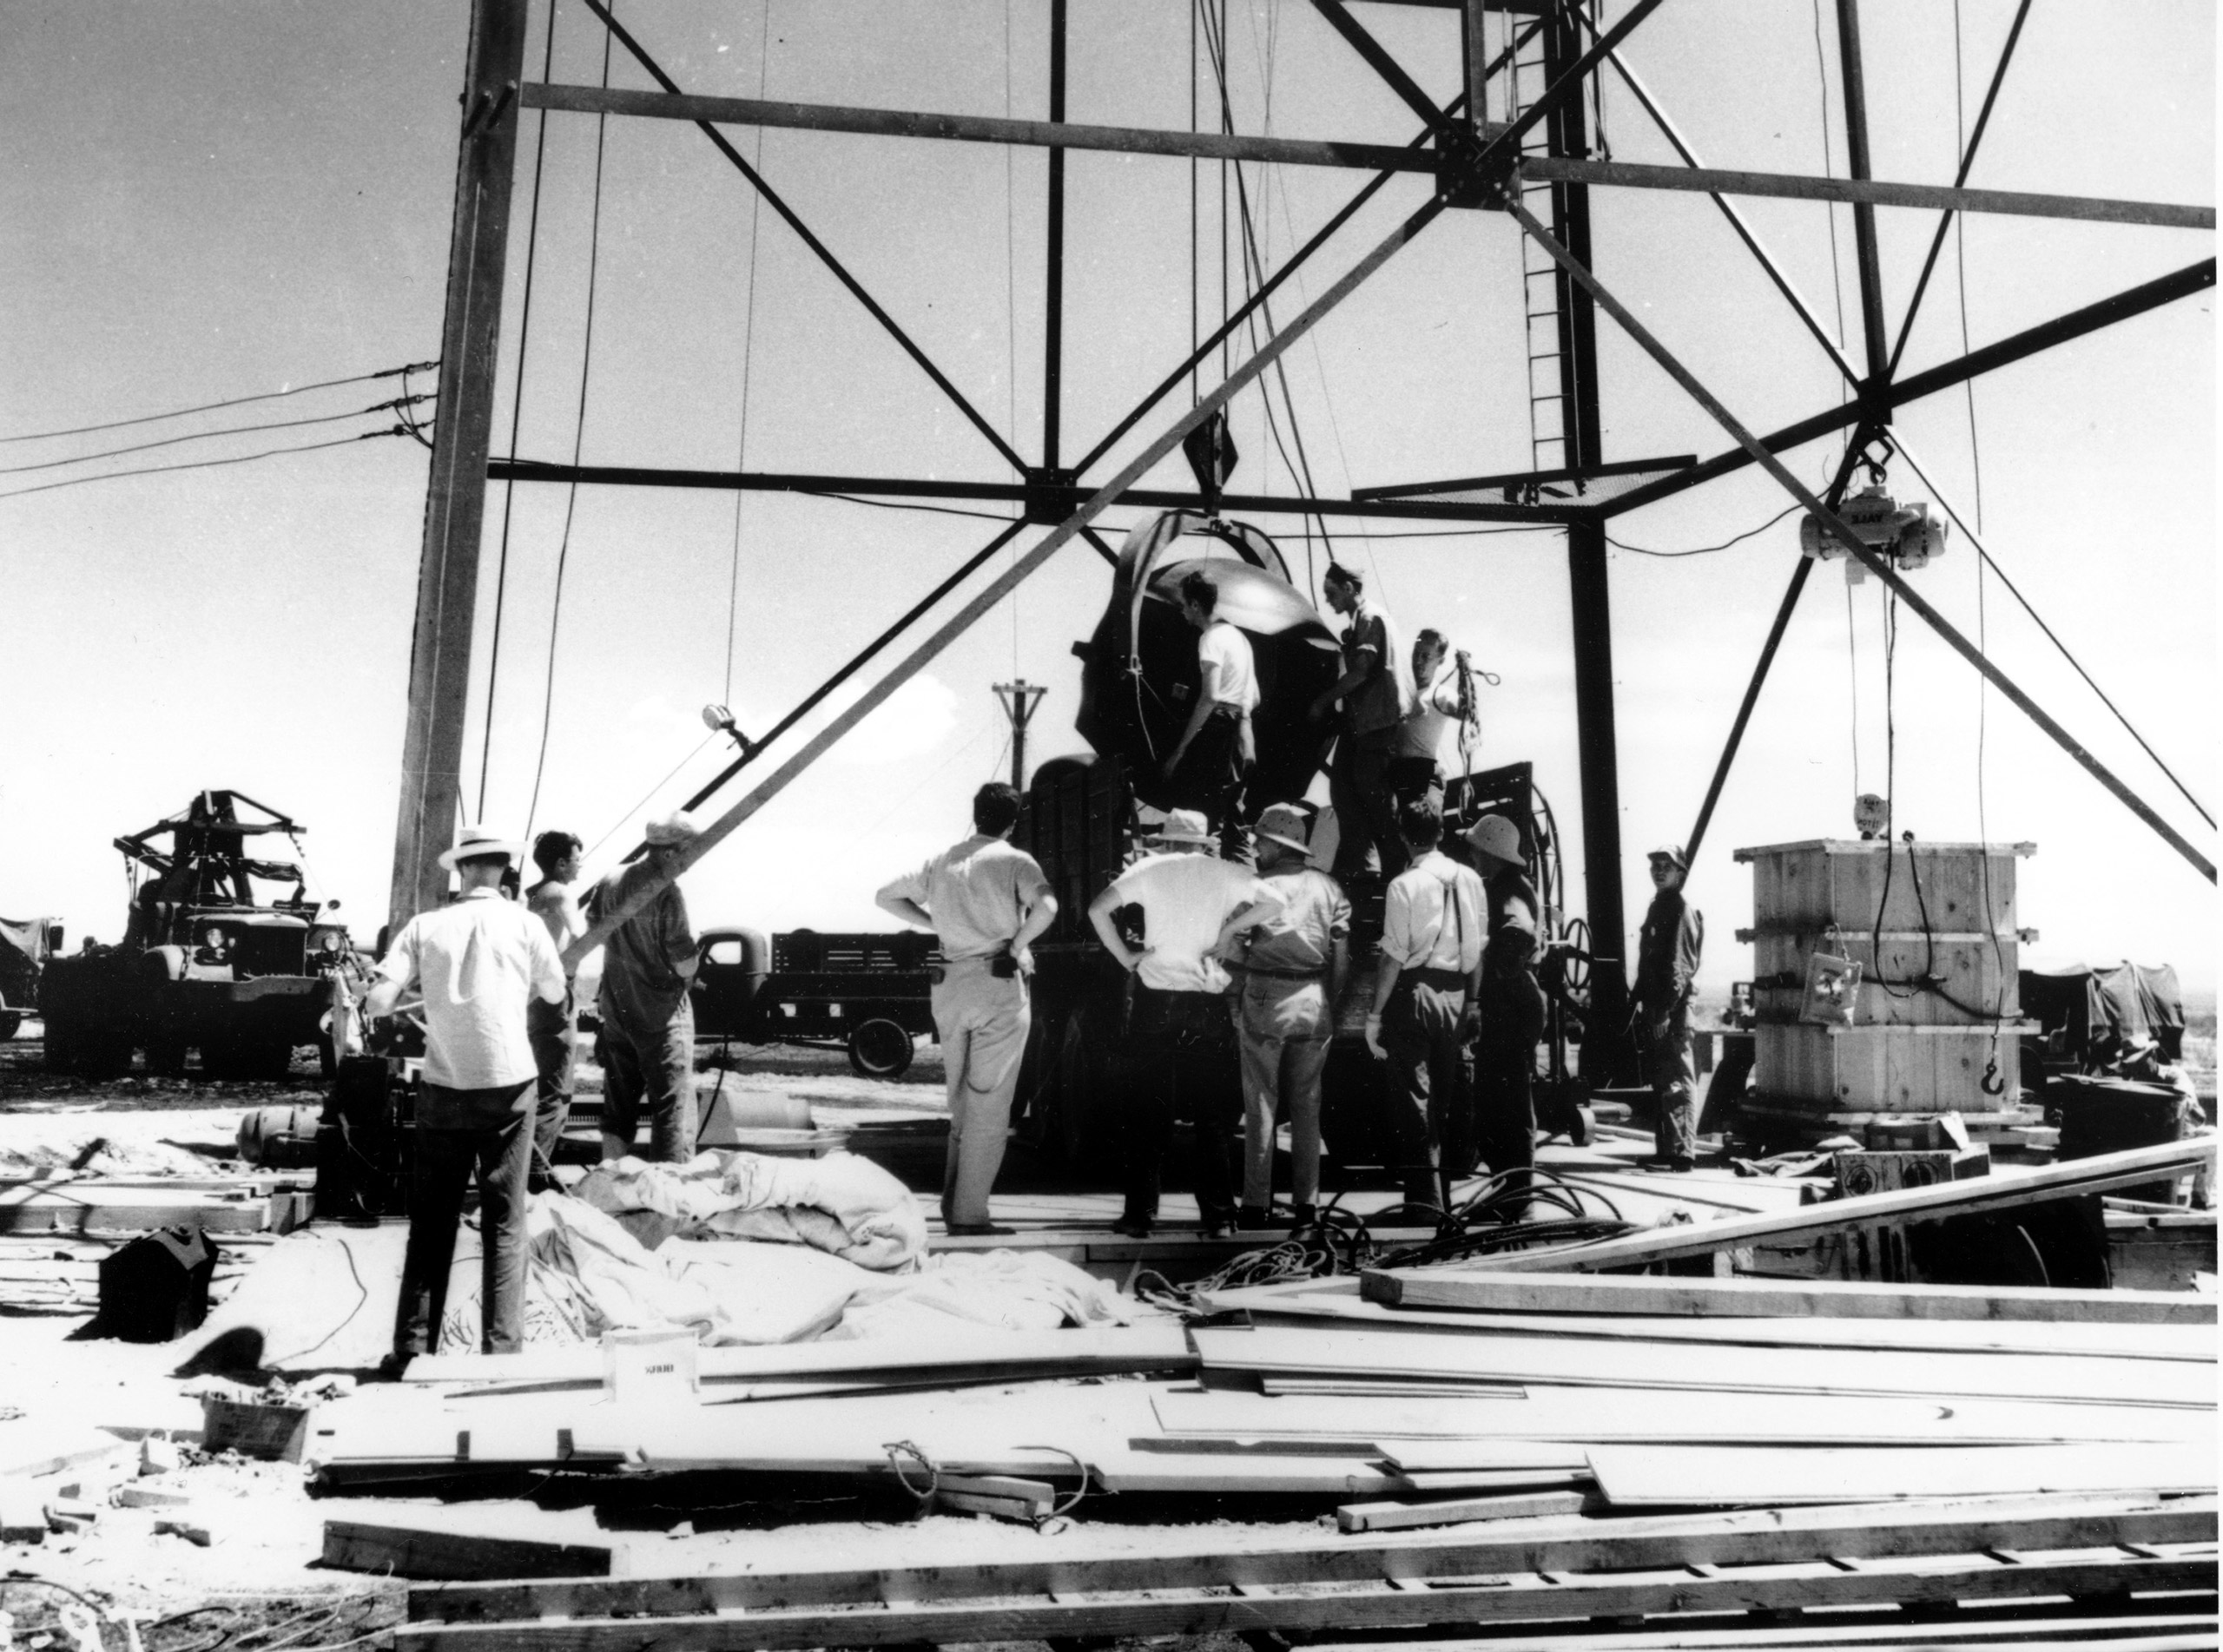 Scientists and workmen rig the world's first atomic bomb to raise it up into a 100-foot tower at the Trinity bomb test site in the desert near Alamagordo, N.M. in July 1945. The first atomic bomb test, known as the Manhattan Project, took place on July 16.